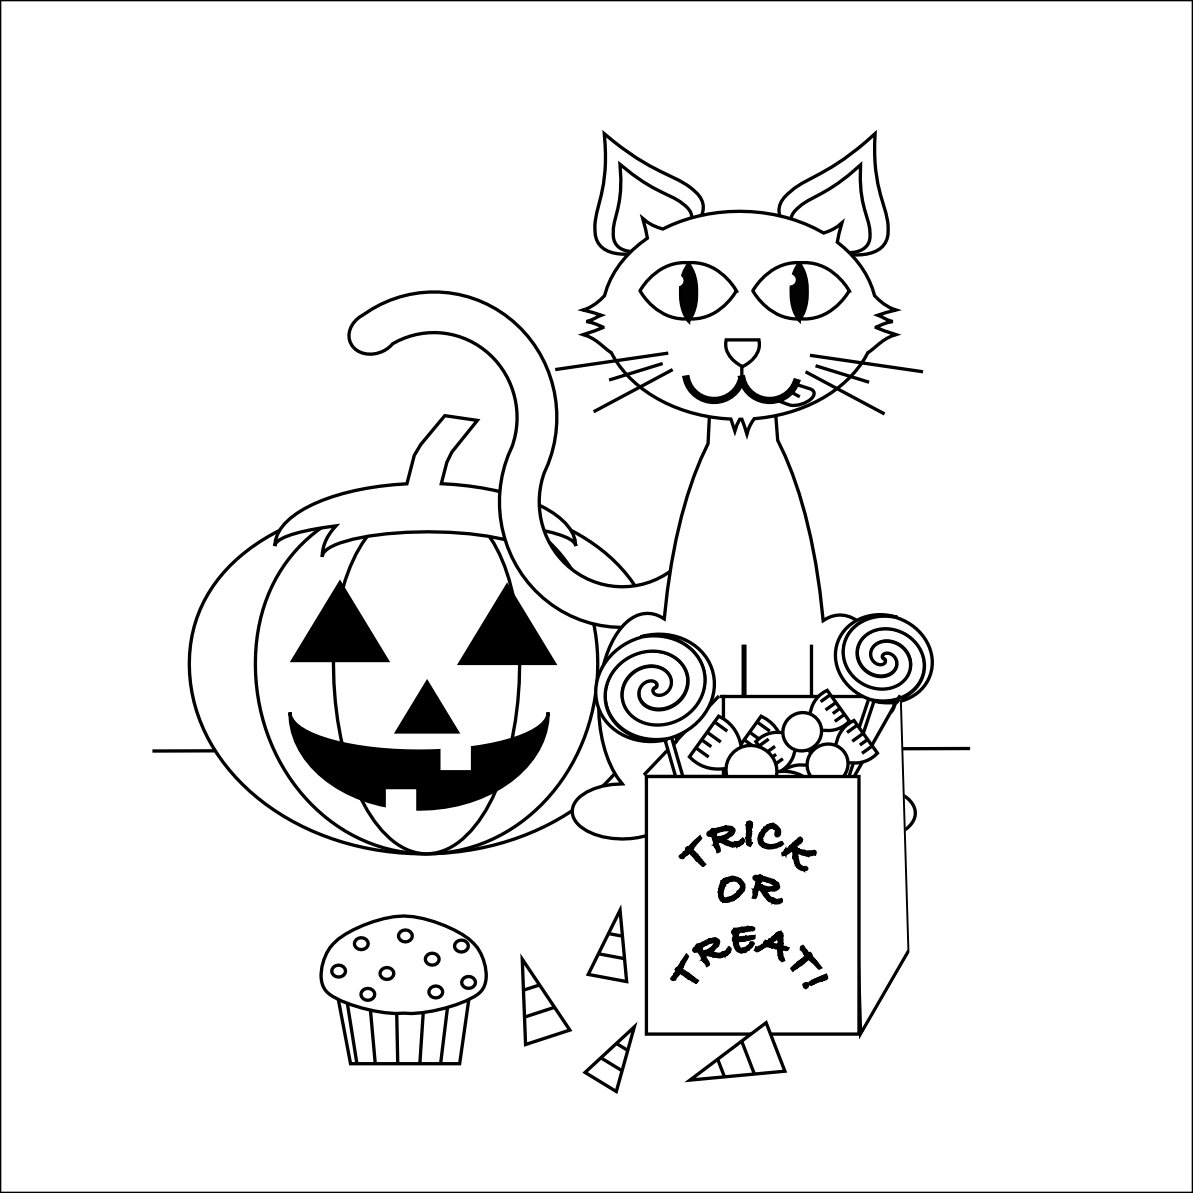 Smarty pants fun printables october 2011 for Printable halloween coloring pages